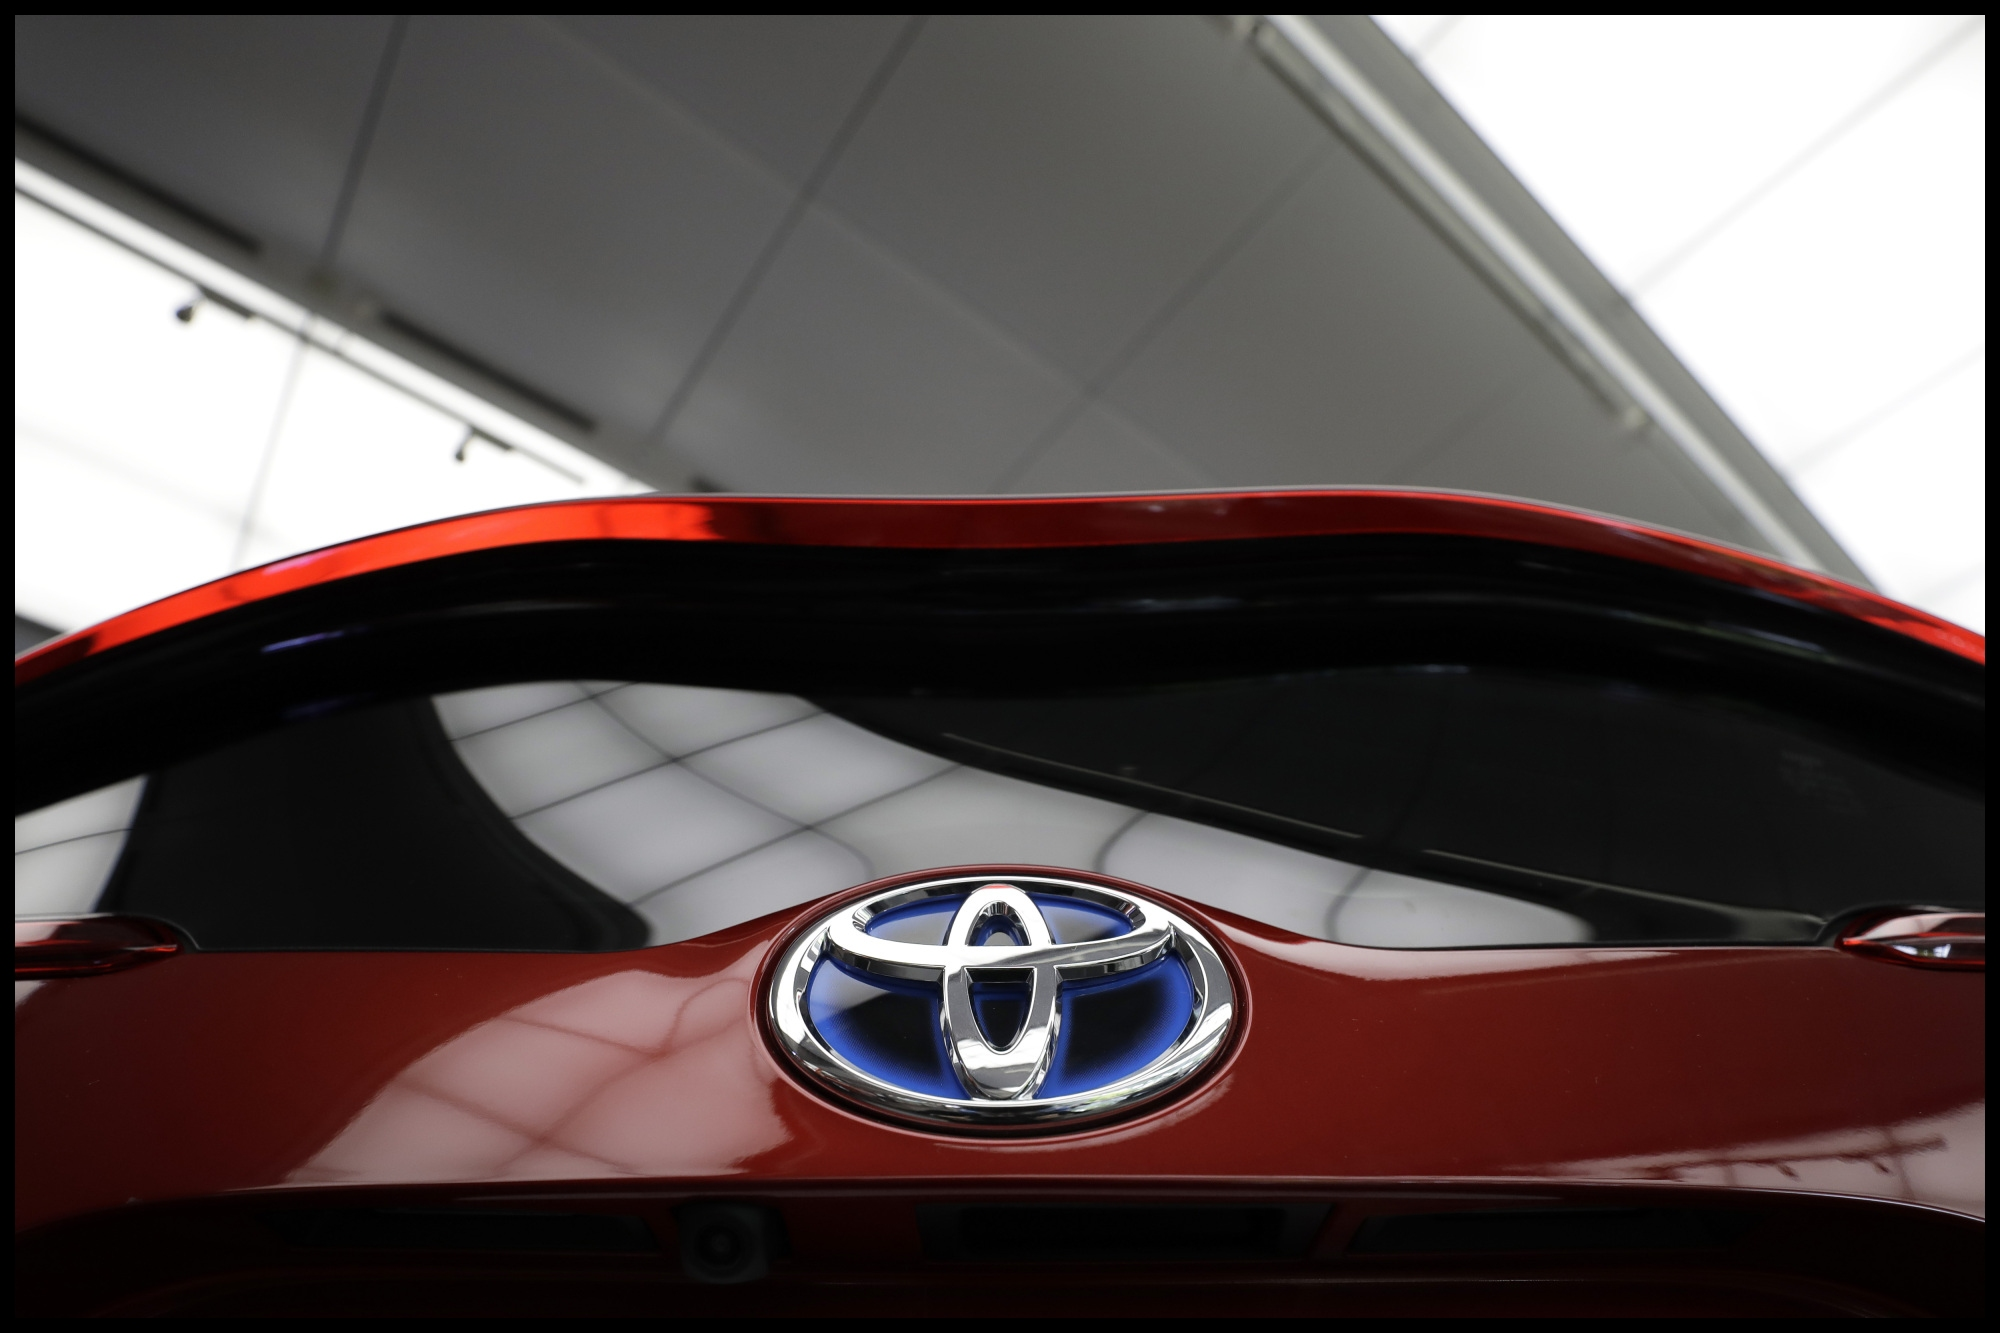 Toyota has launched a Honolulu car sharing service